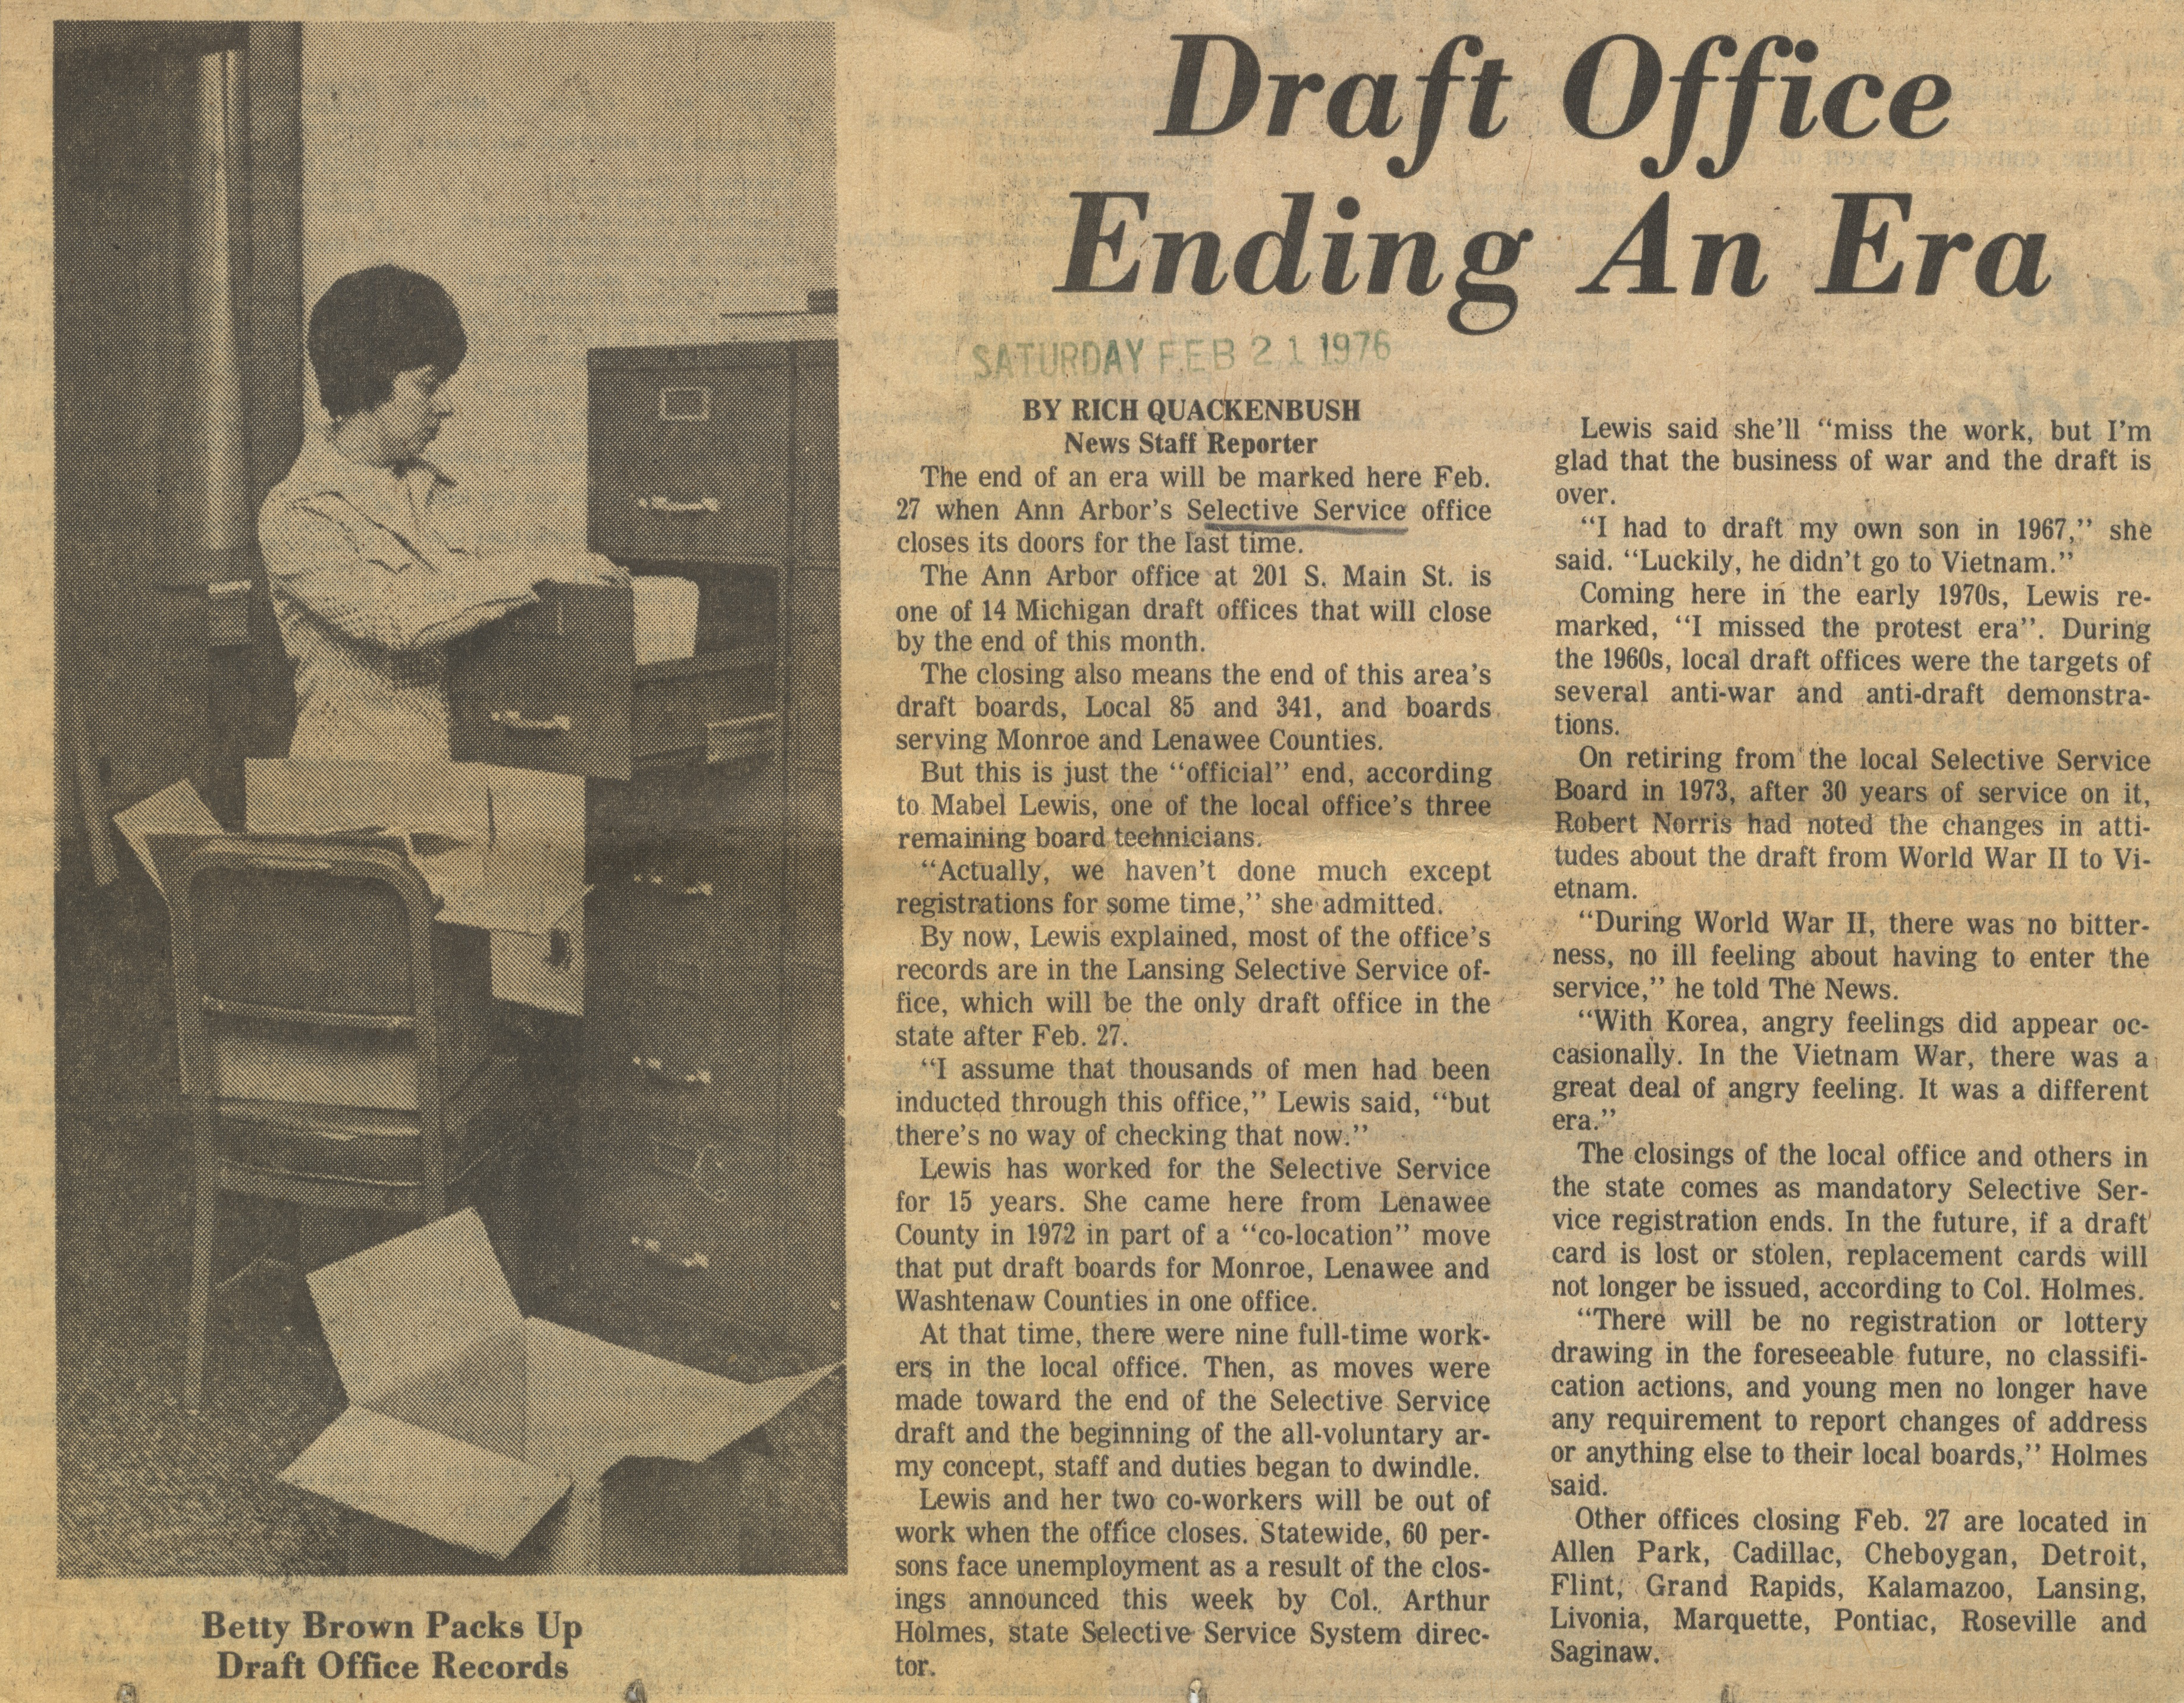 Draft Office Ending An Era image